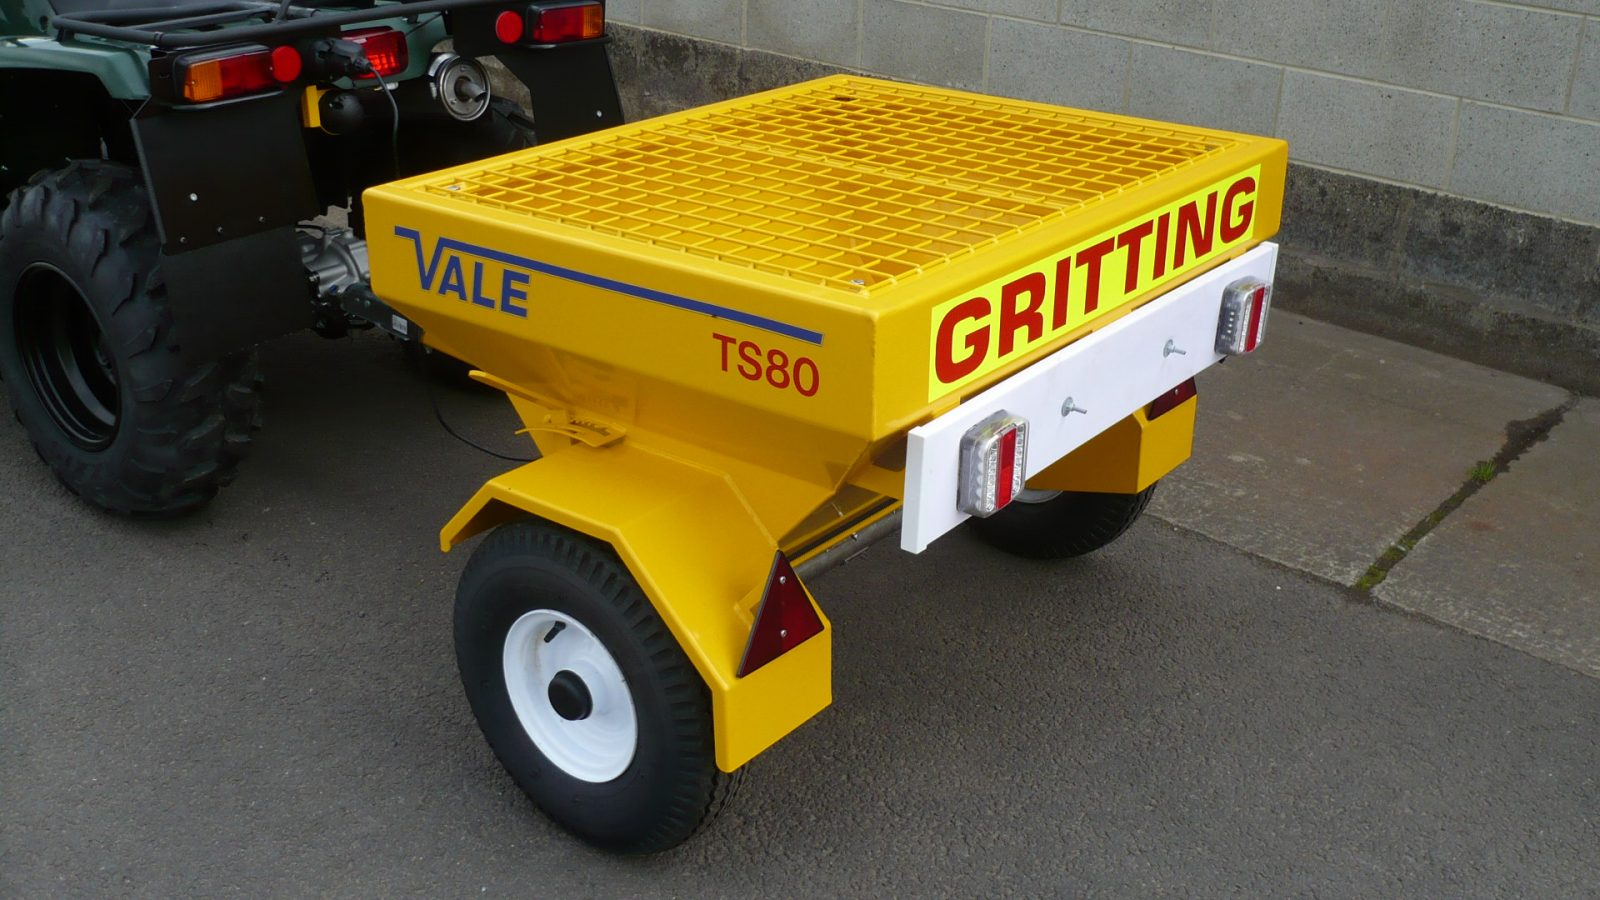 The ATV quad bike comes with VALE Engineering's Towed Drop Gritter TS80